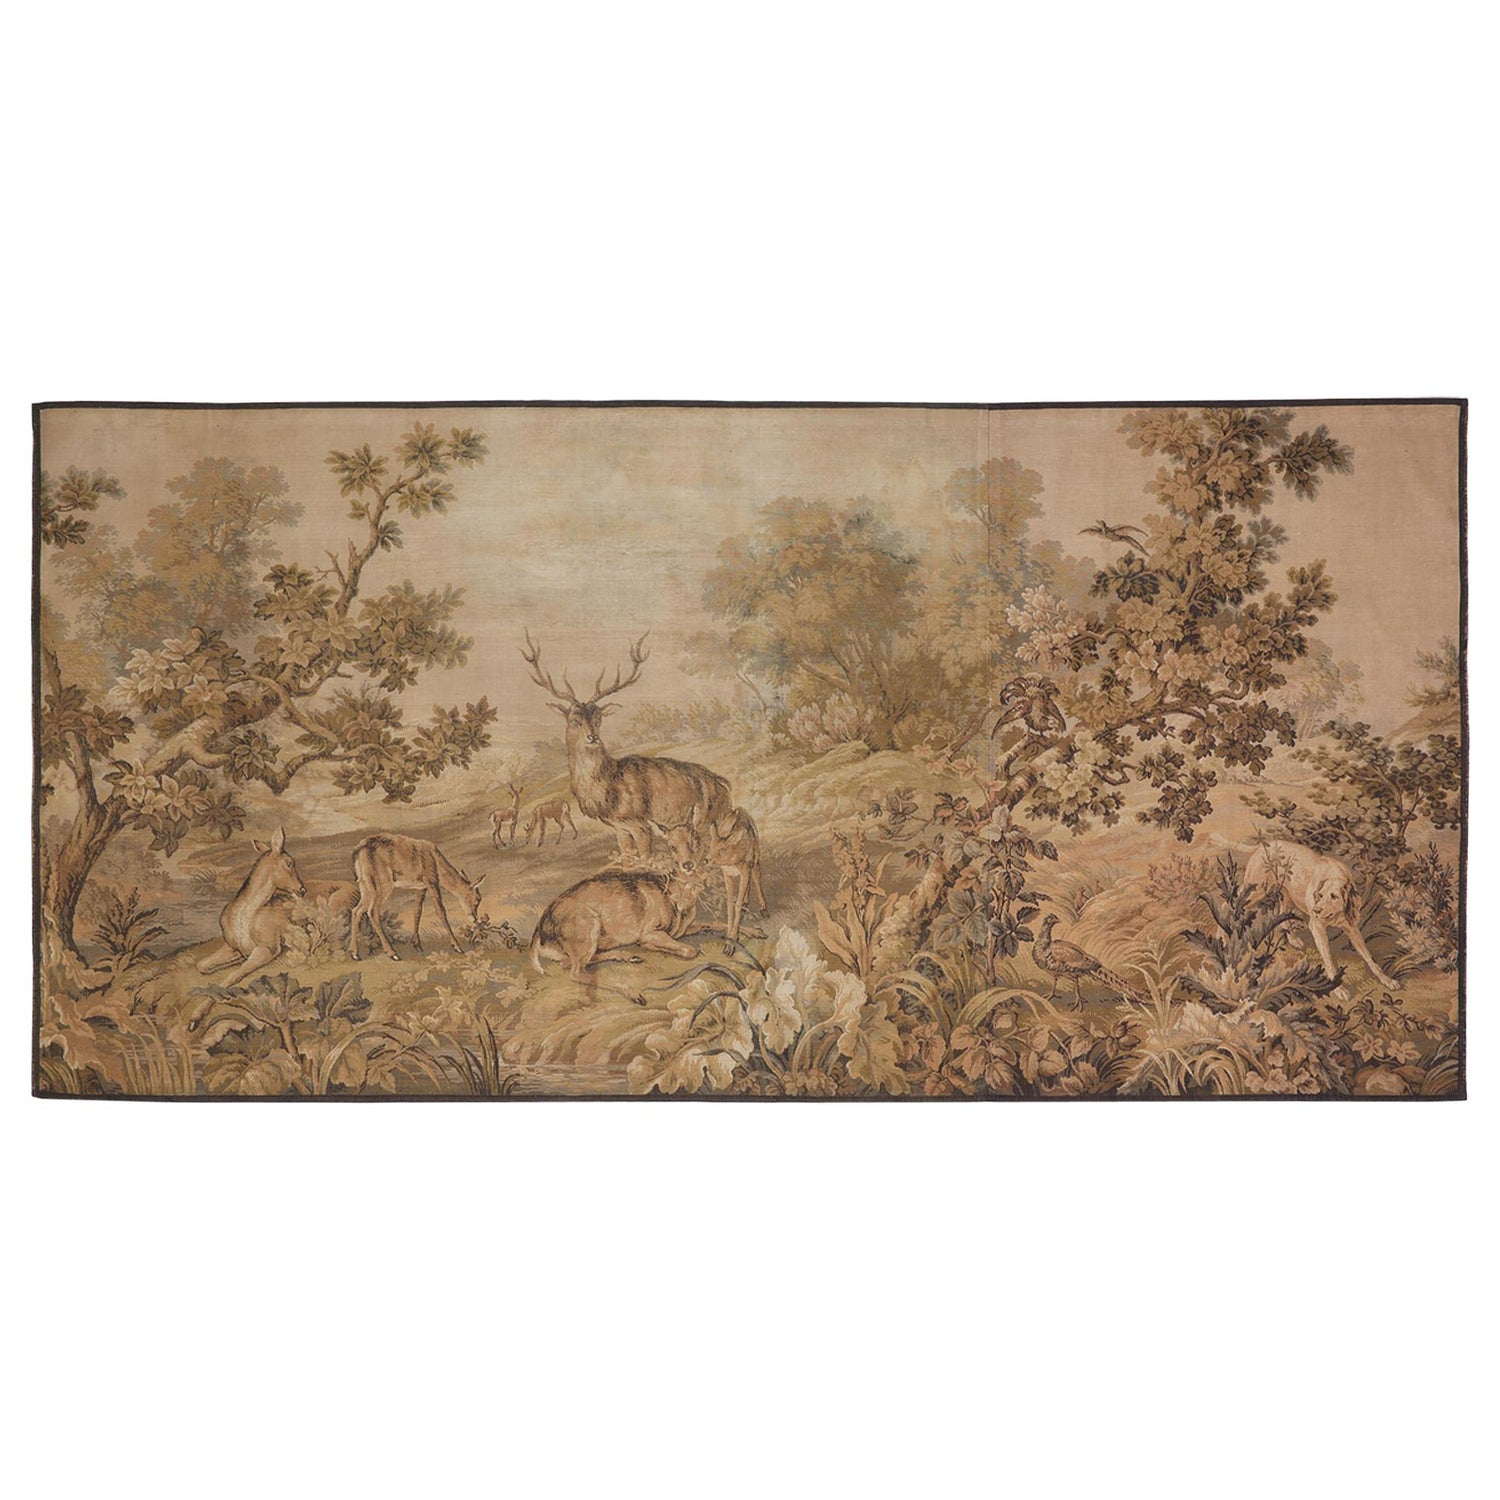 Tapestry Aubusson Sporting Woodland Stag Deer Hunting Dog Massive